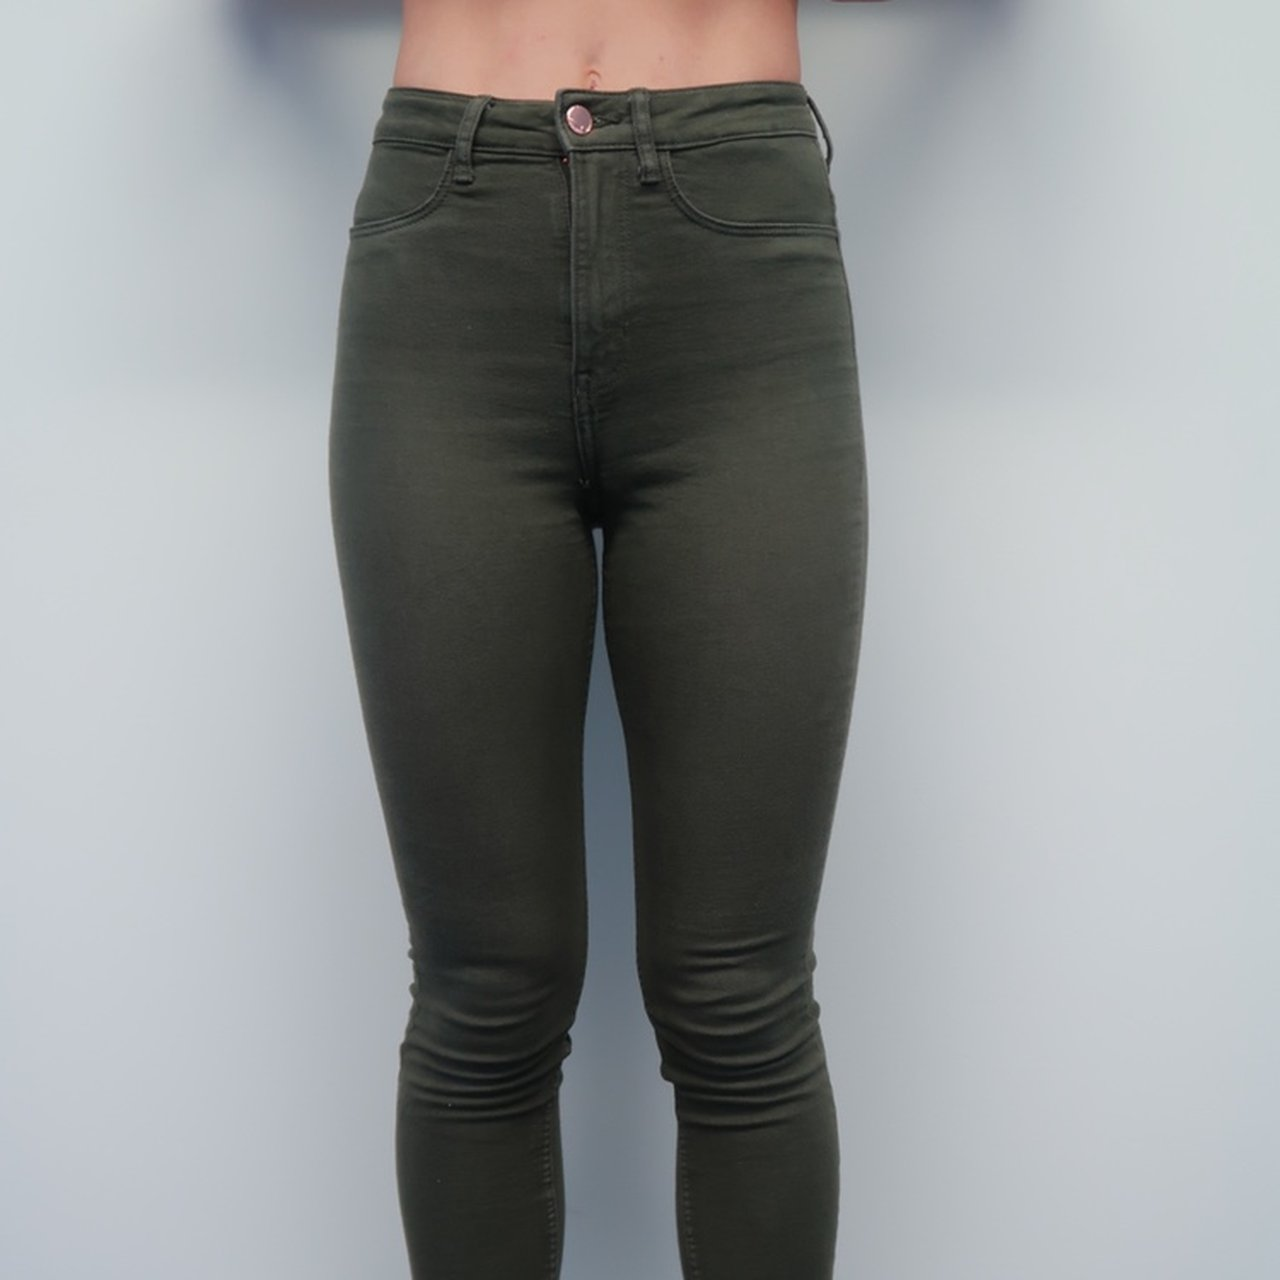 d45d8111605b @chrissyorch. 6 days ago. London, United Kingdom. H&M green high-waisted  skinny jeans. Good condition.